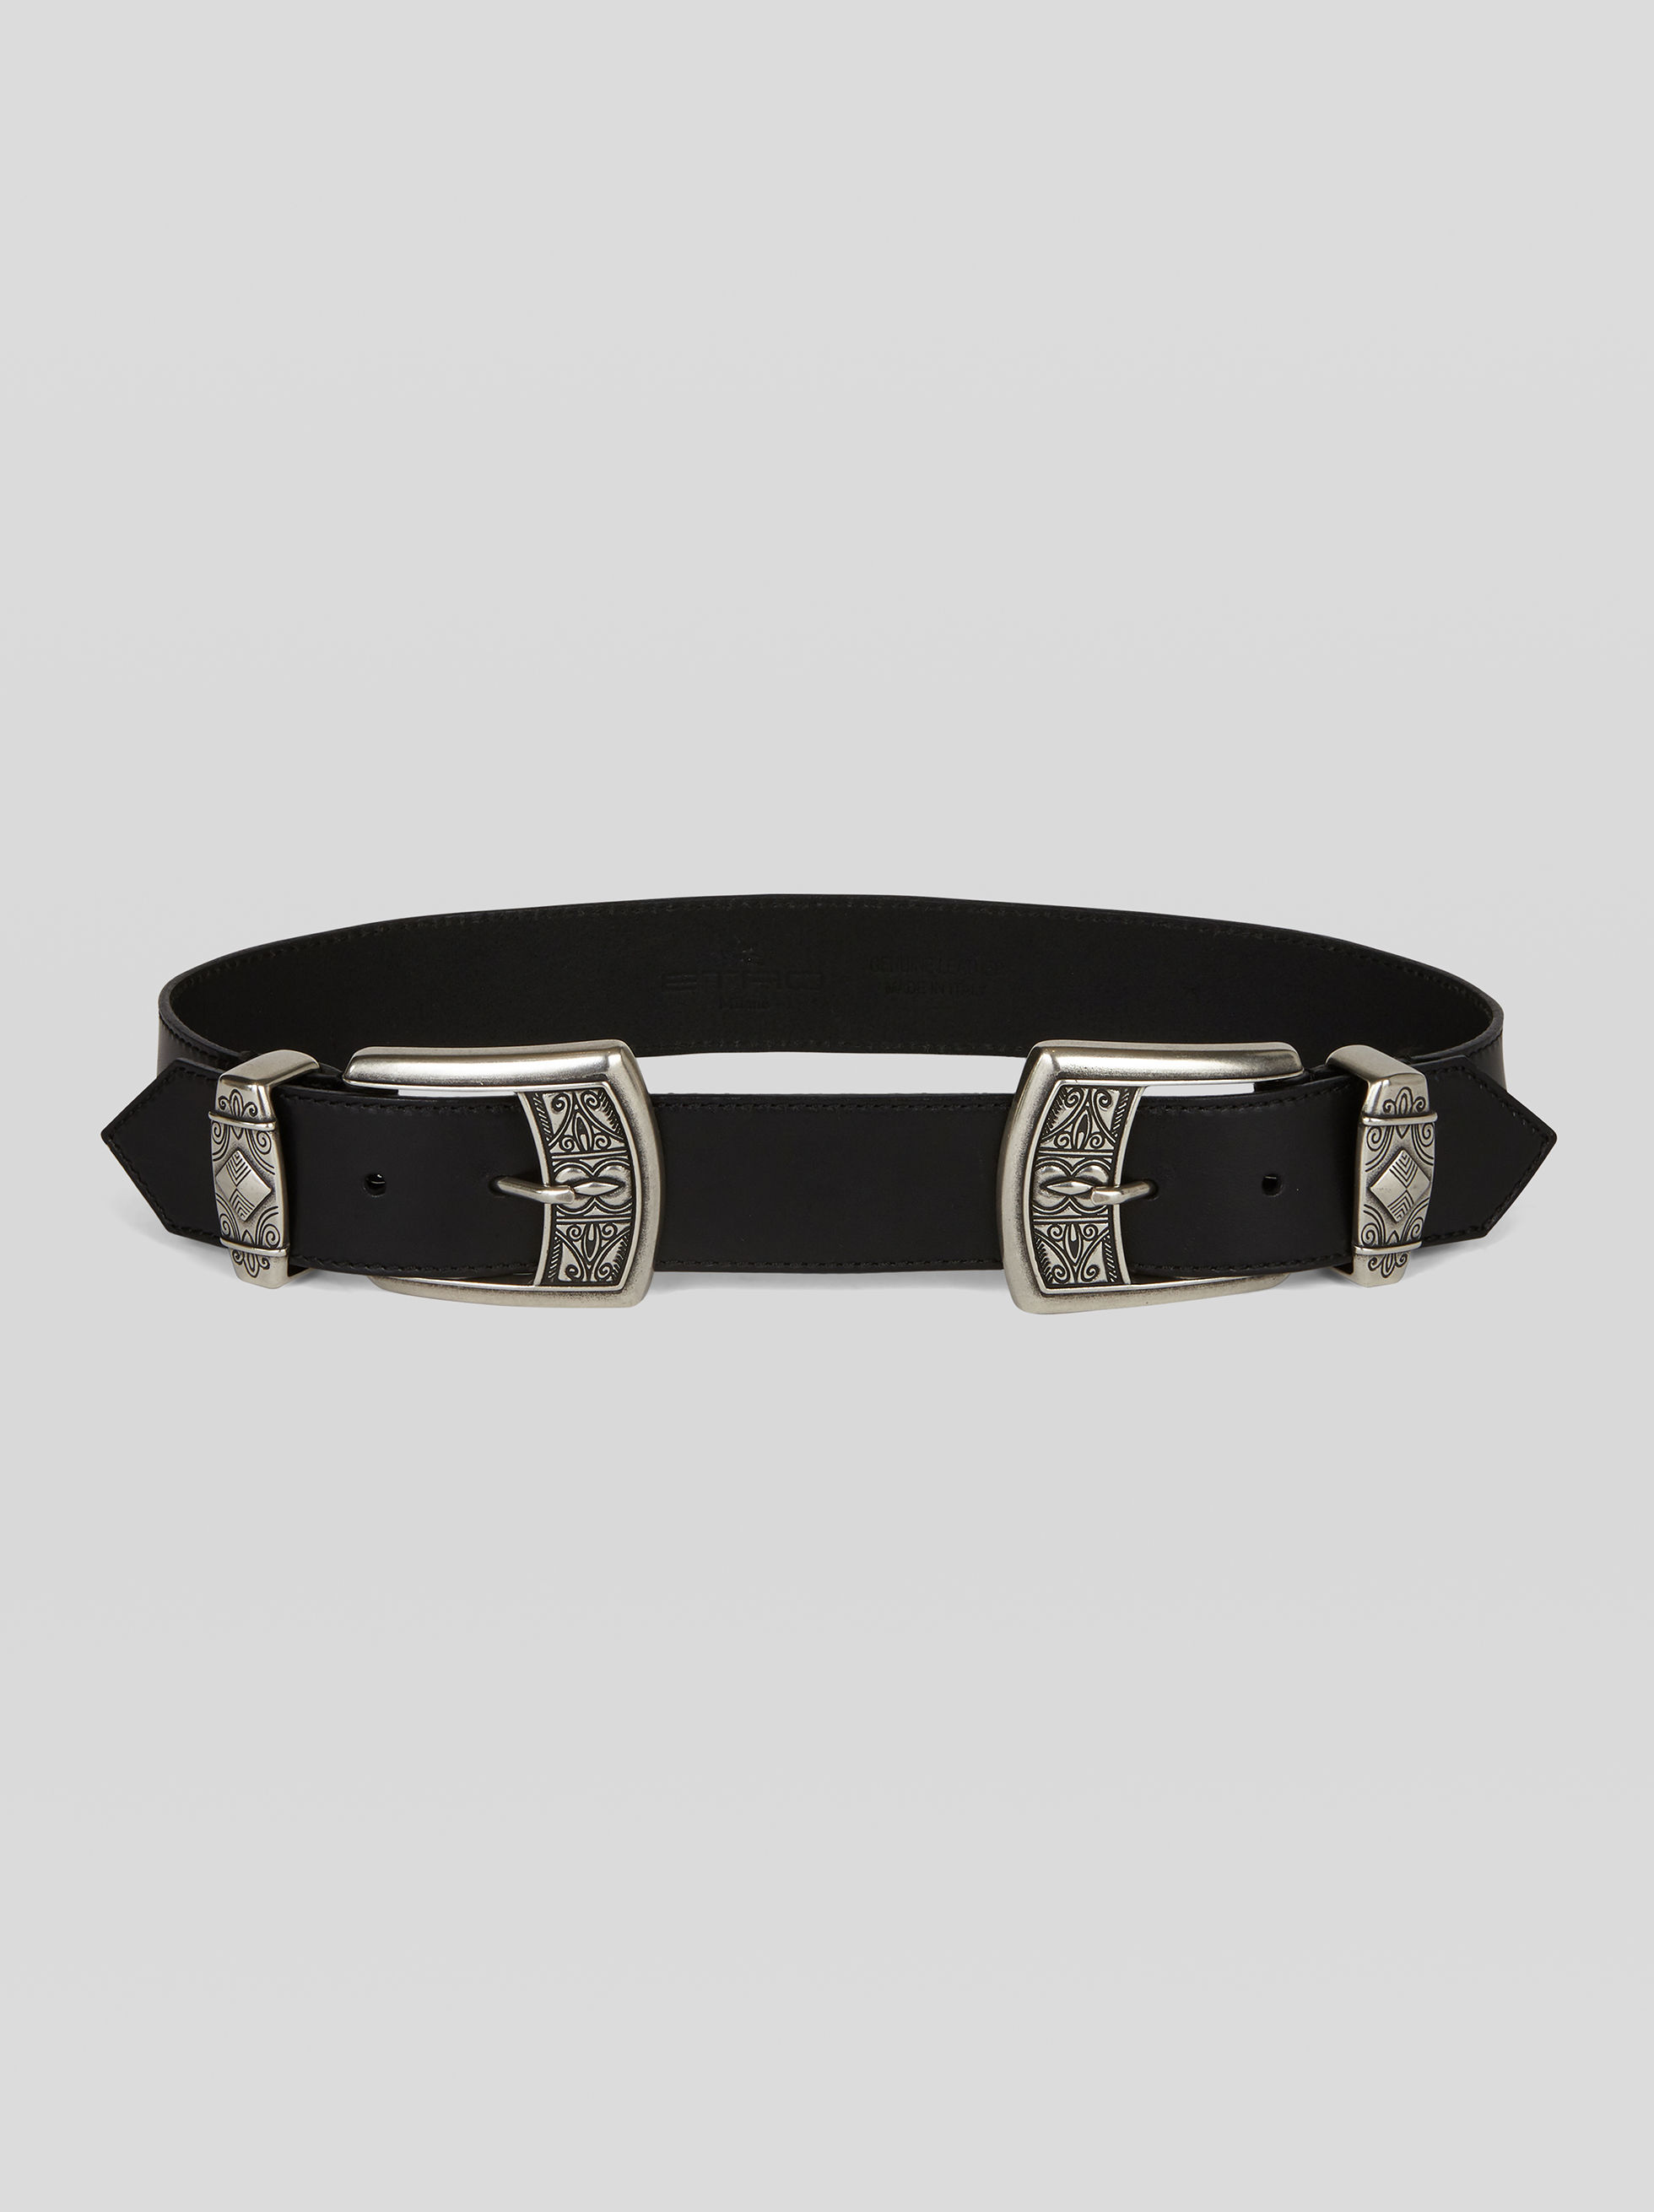 LEATHER BELT WITH DOUBLE BUCKLE